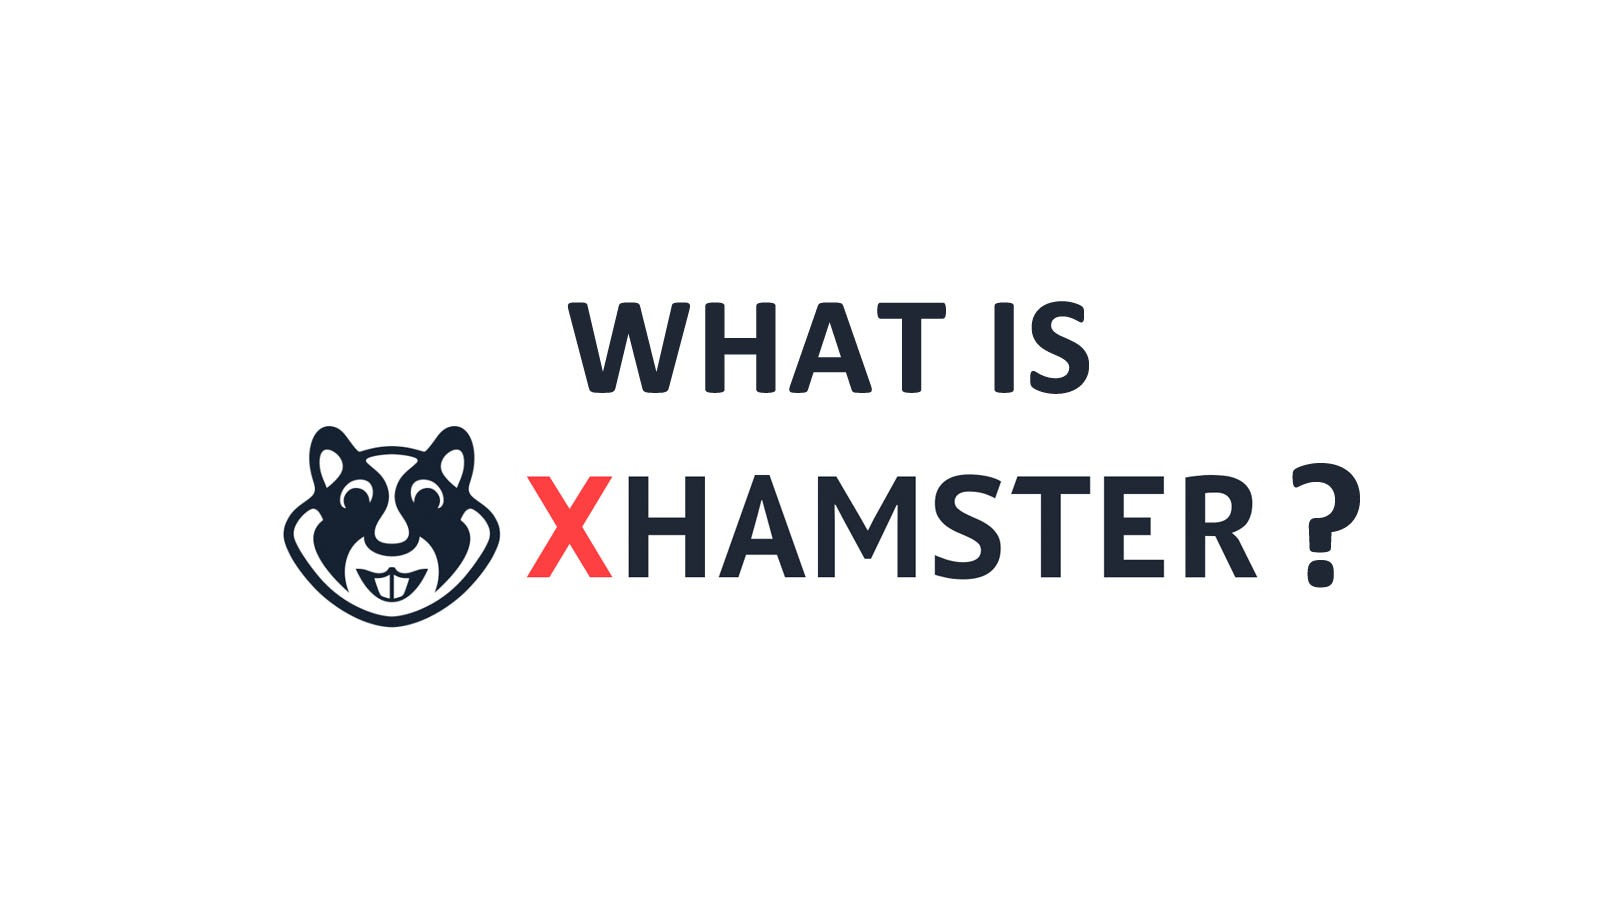 what is xhamster? - askcybersecurity